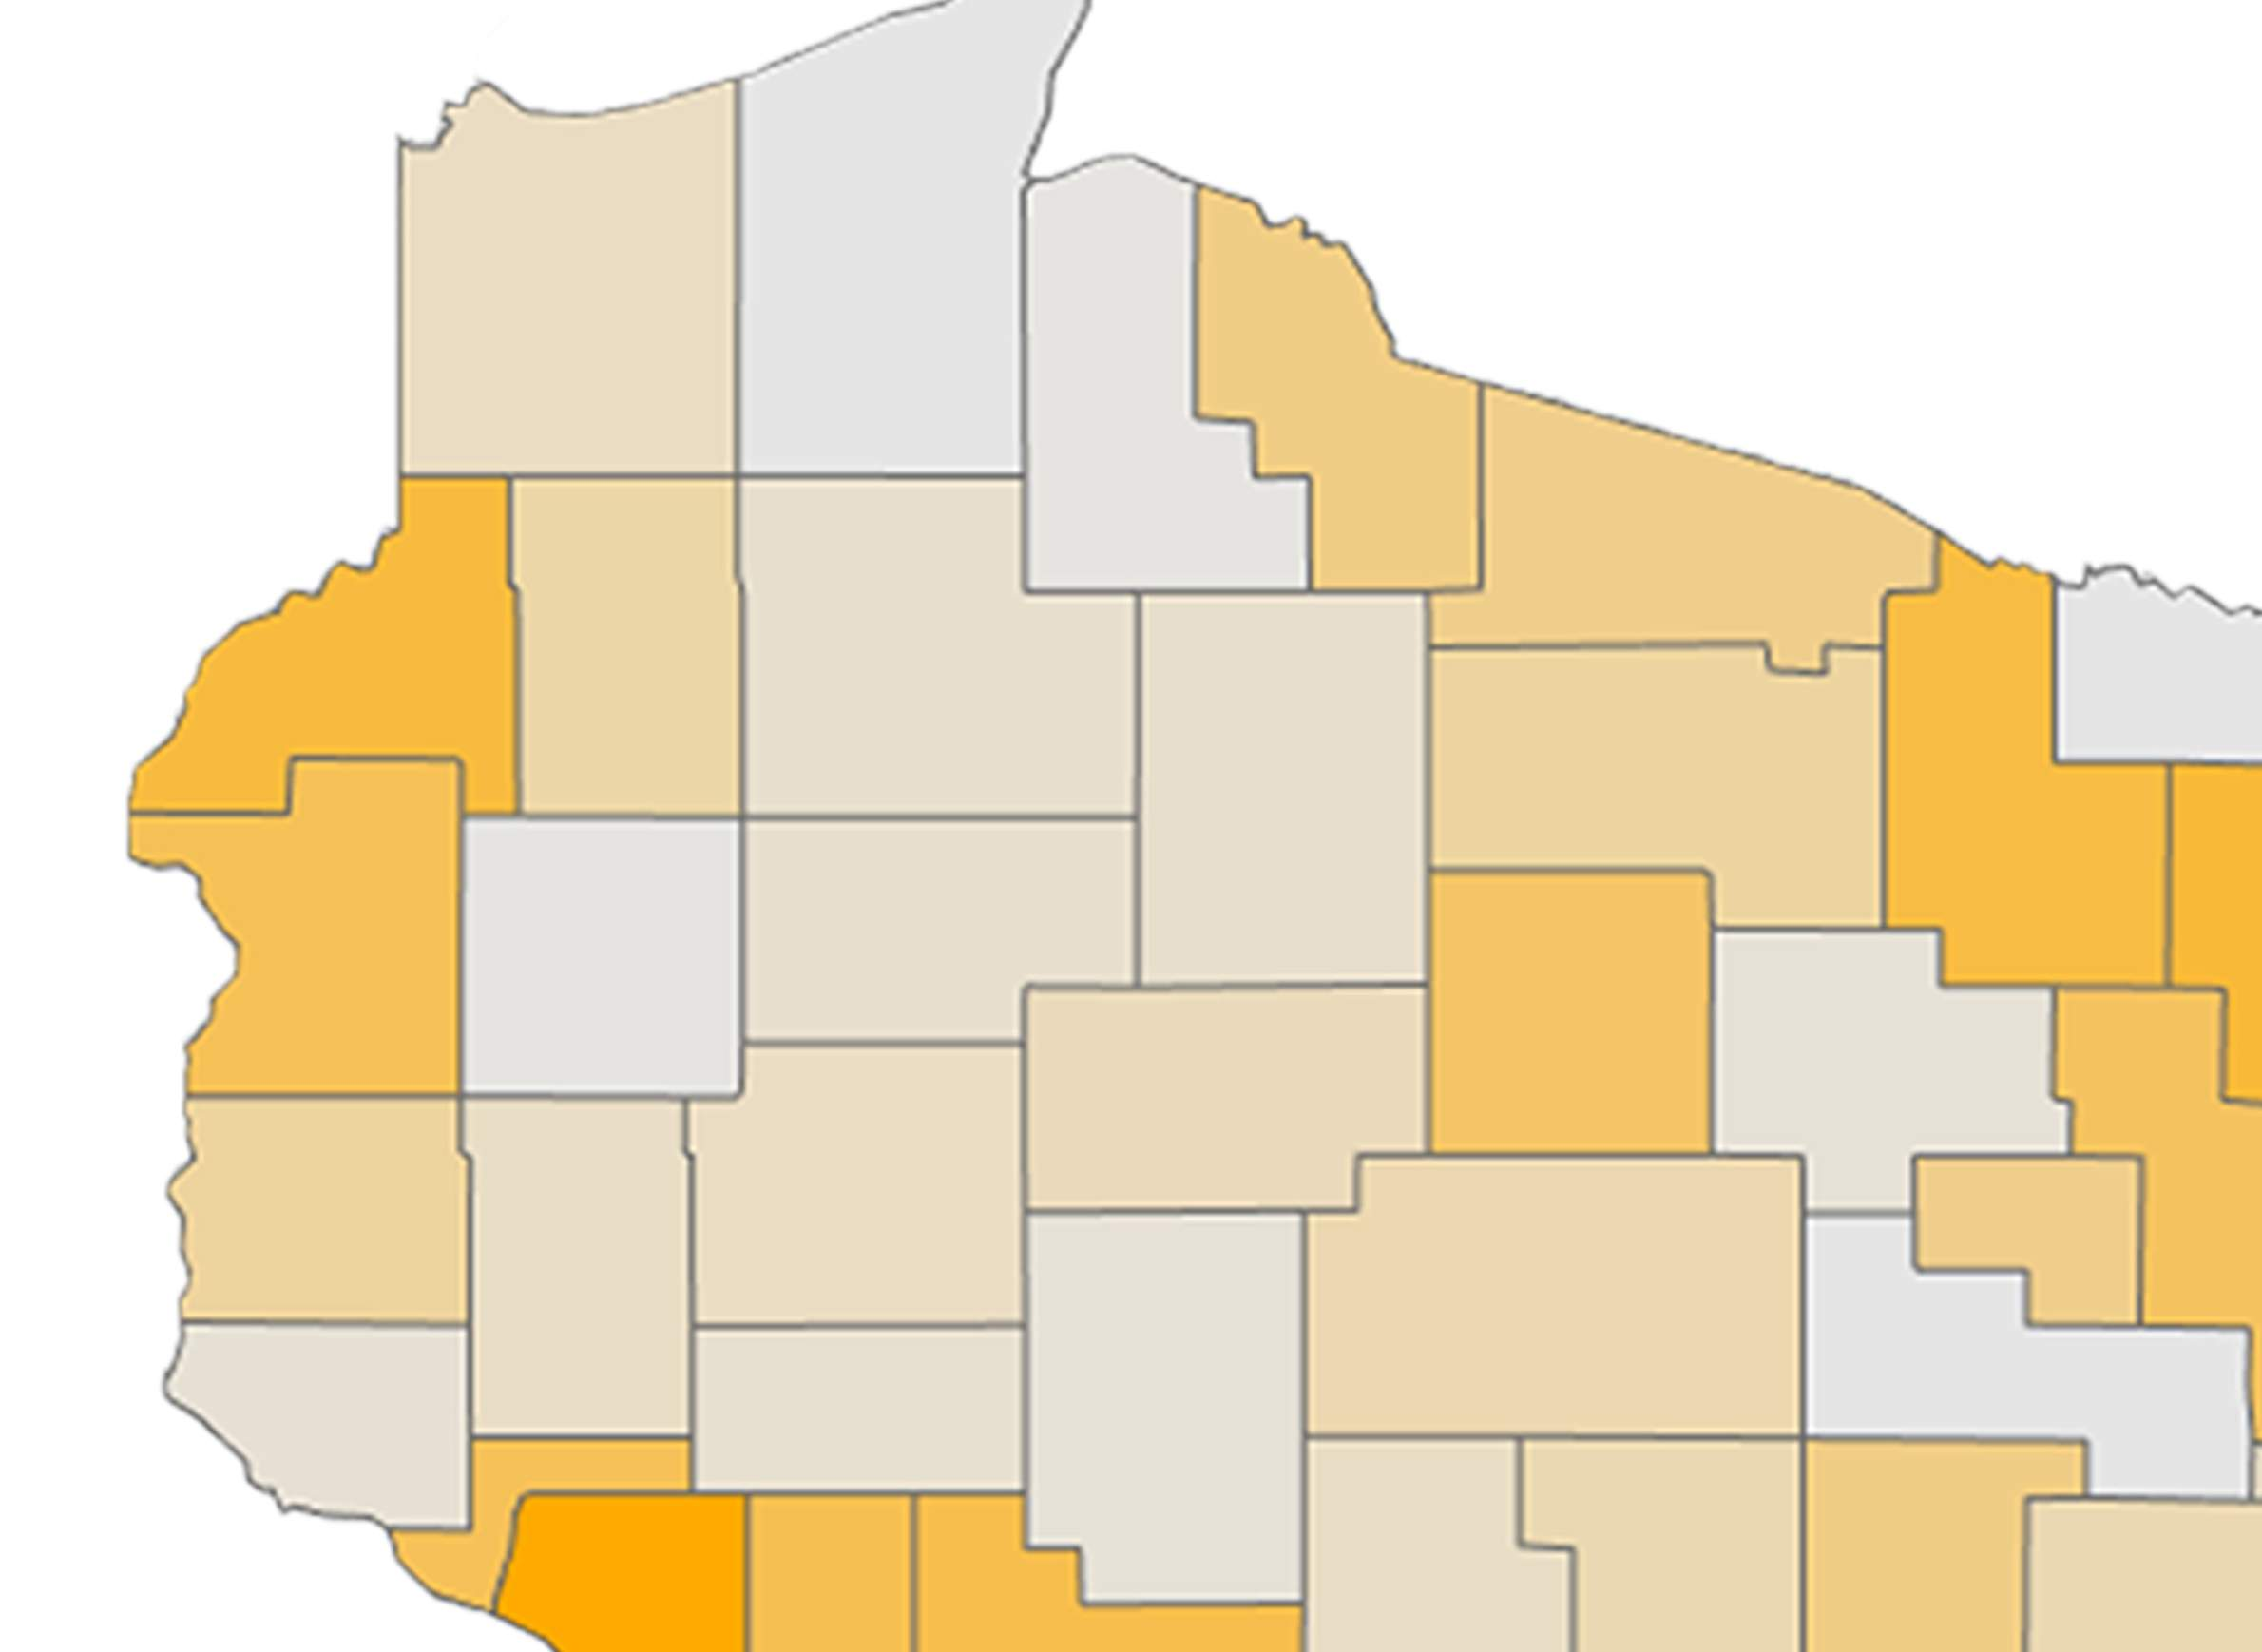 Youth suicide rates by county